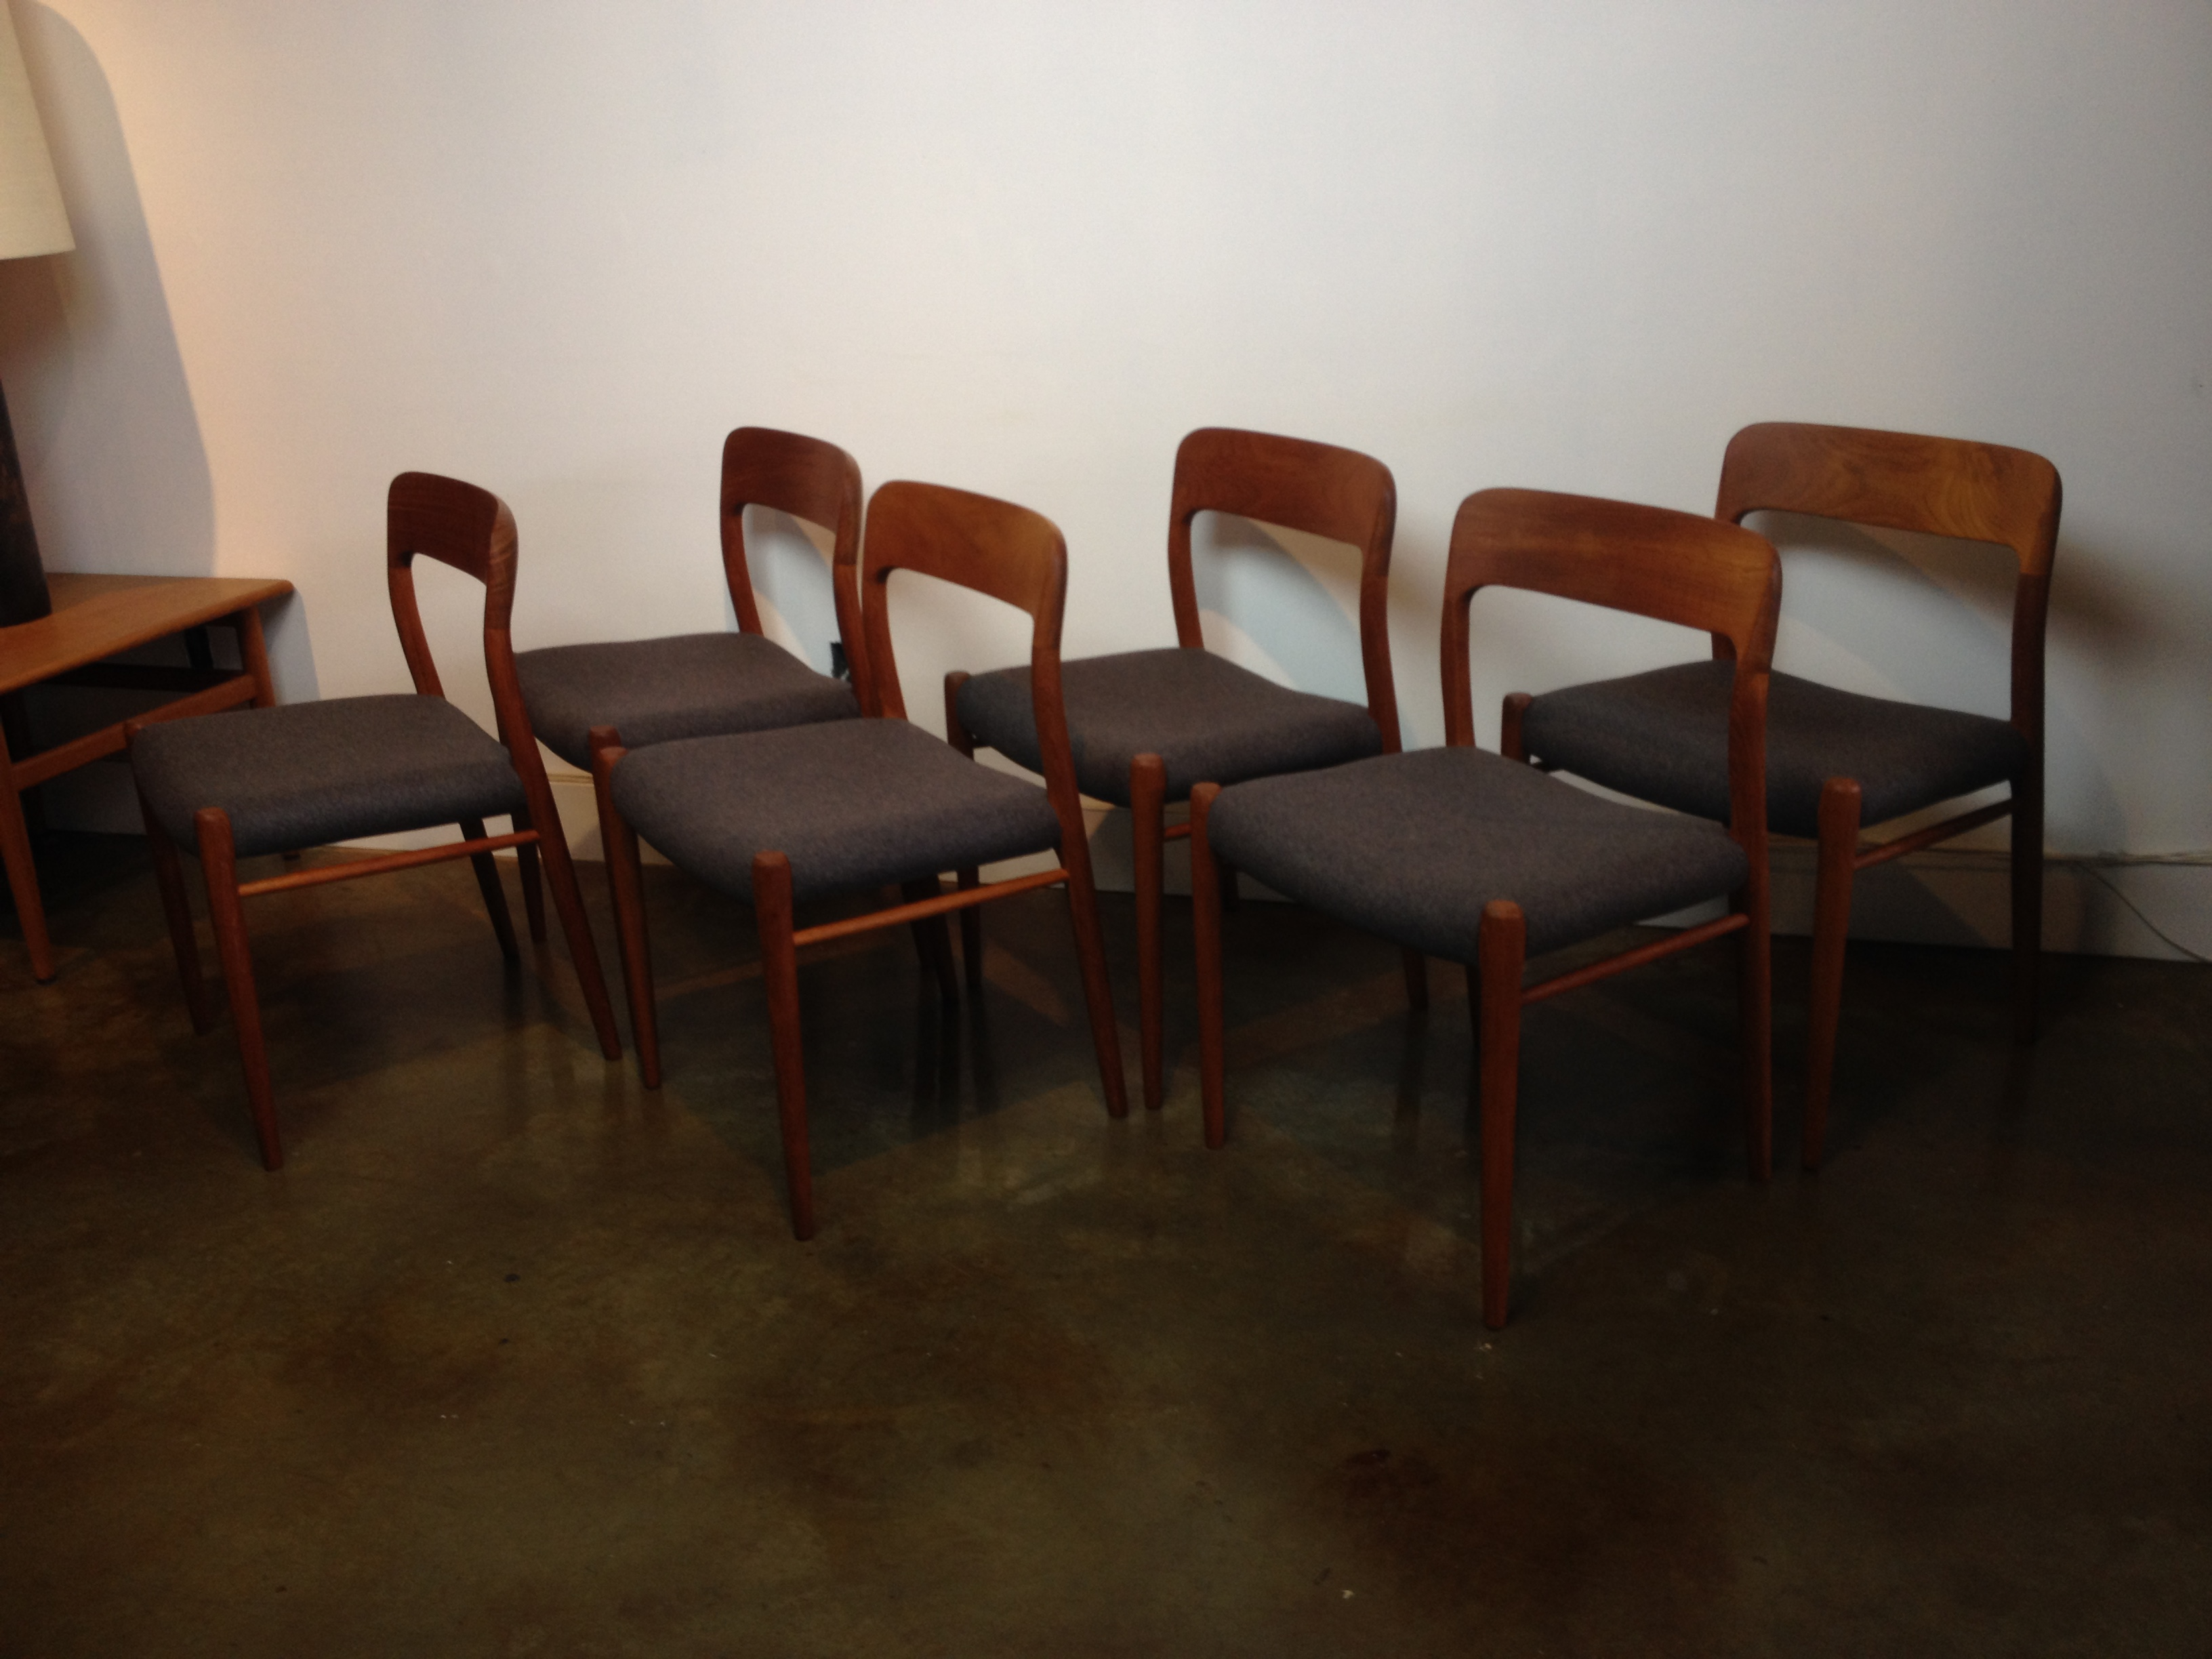 Stunning Set Of 6 Teak Dining Chairs Designed By Niels Moller For JL